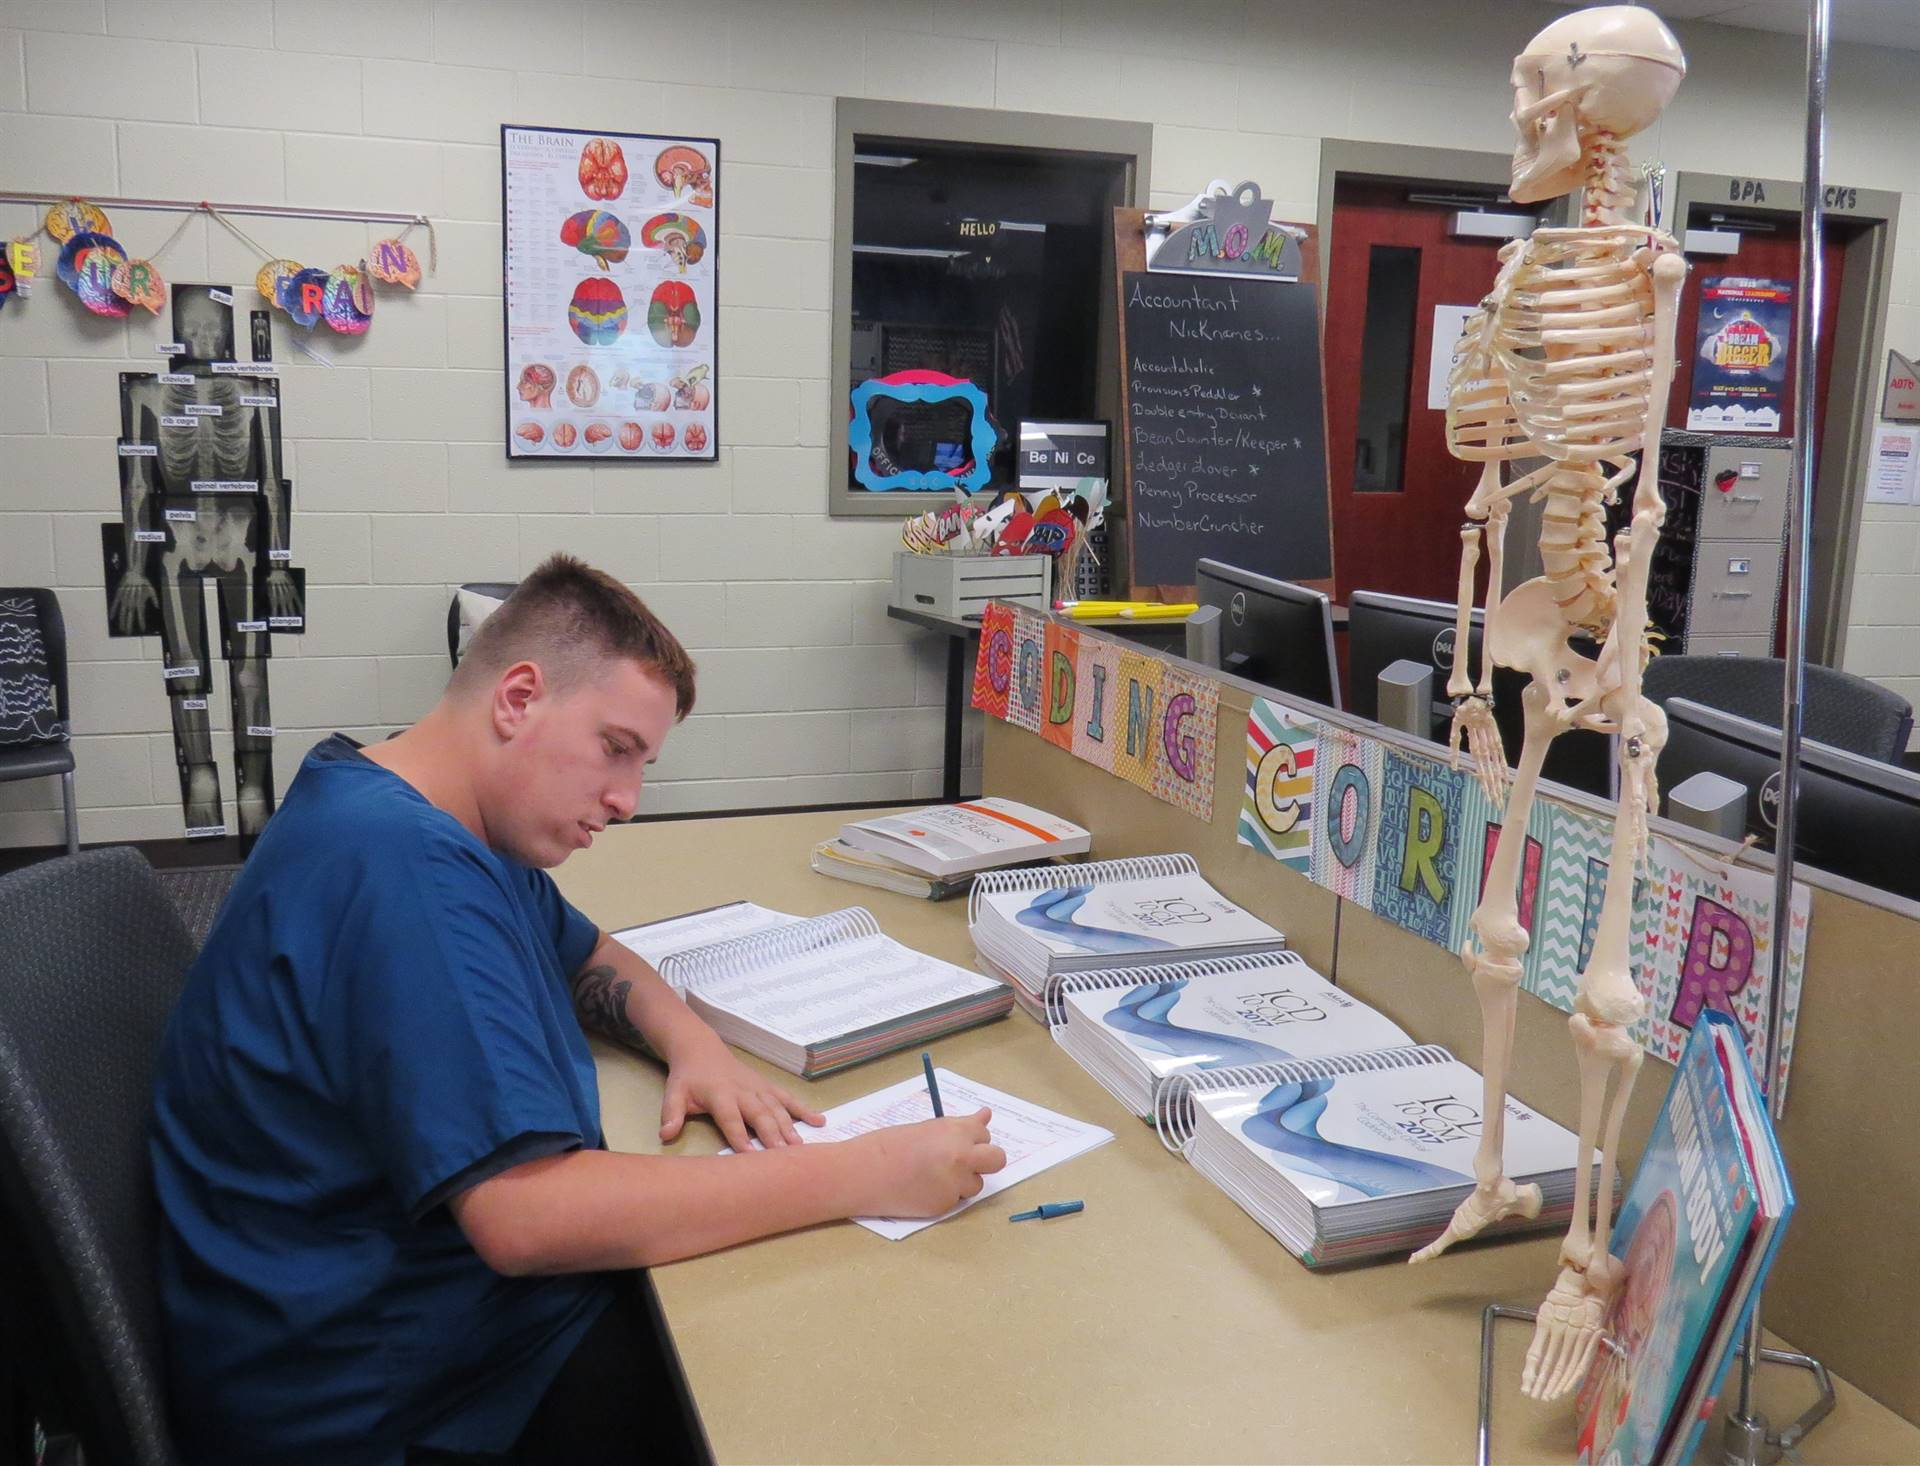 One male student working on medical billing and coding